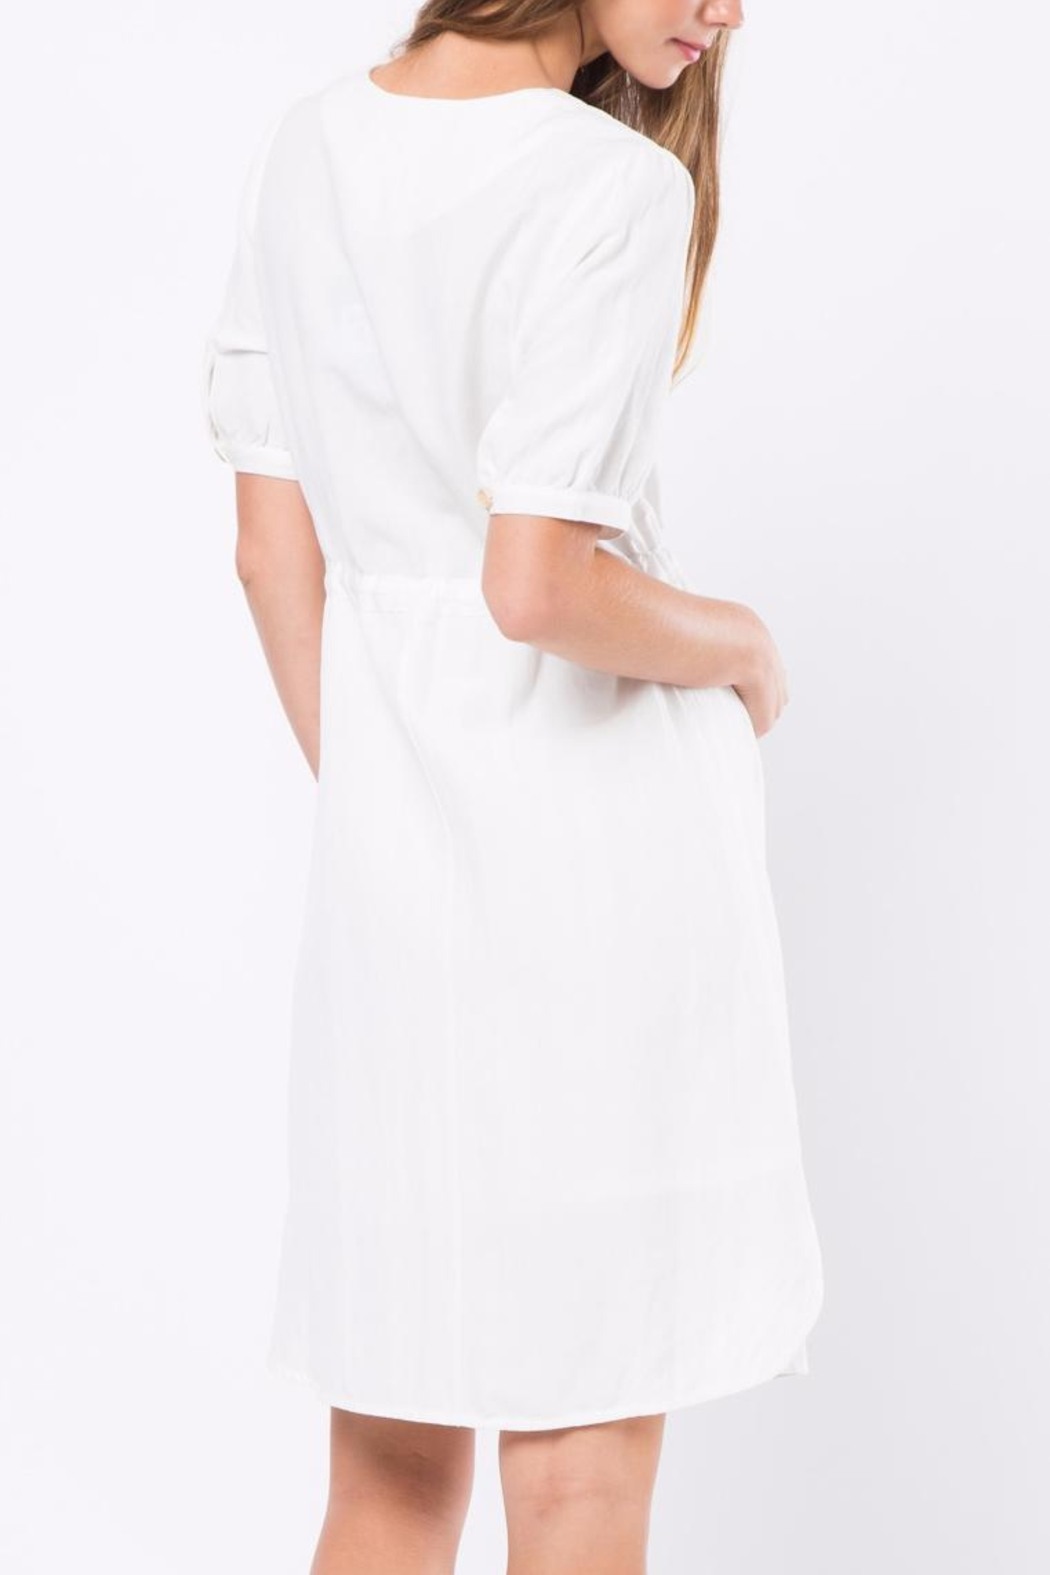 Movint Cara Blanc Dress - Front Full Image